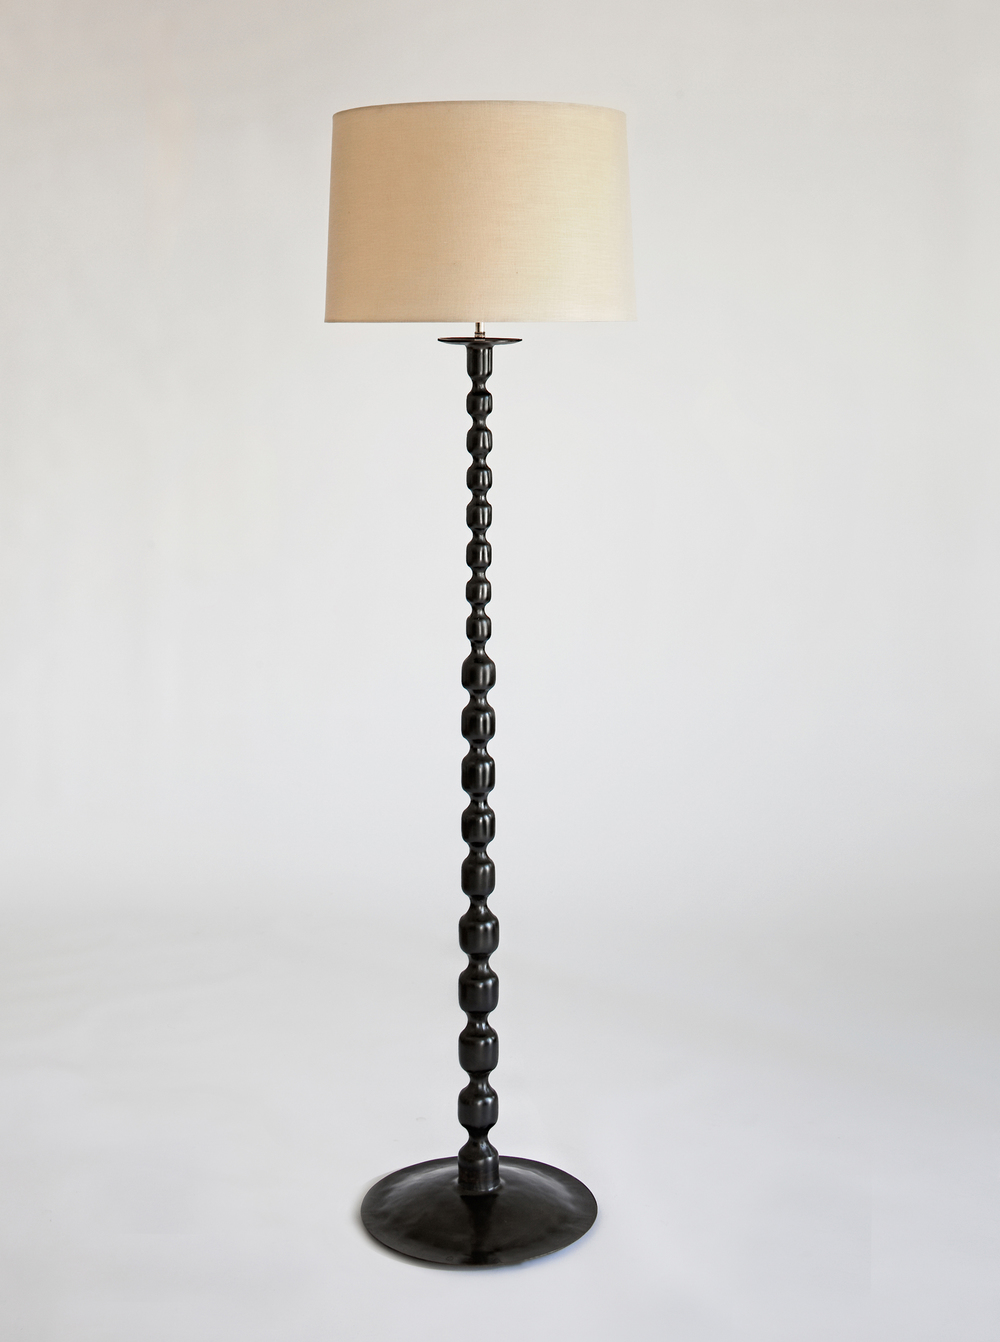 Pernula Floor Lamp.jpg